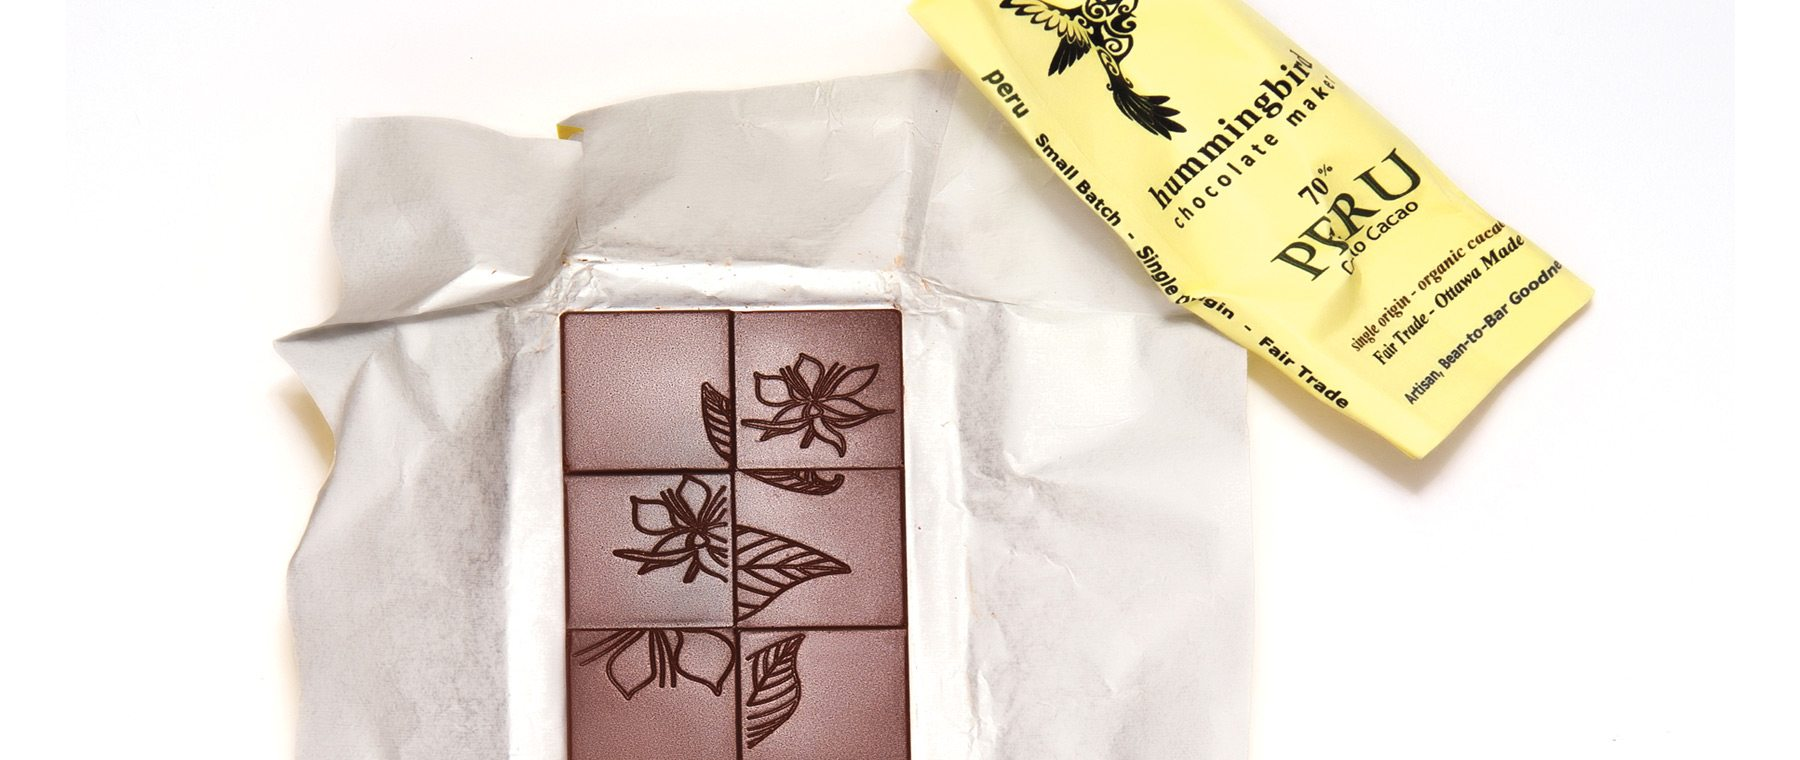 Chocolate! Award-winning maker Hummingbird offers July factory tours (and tasting!)